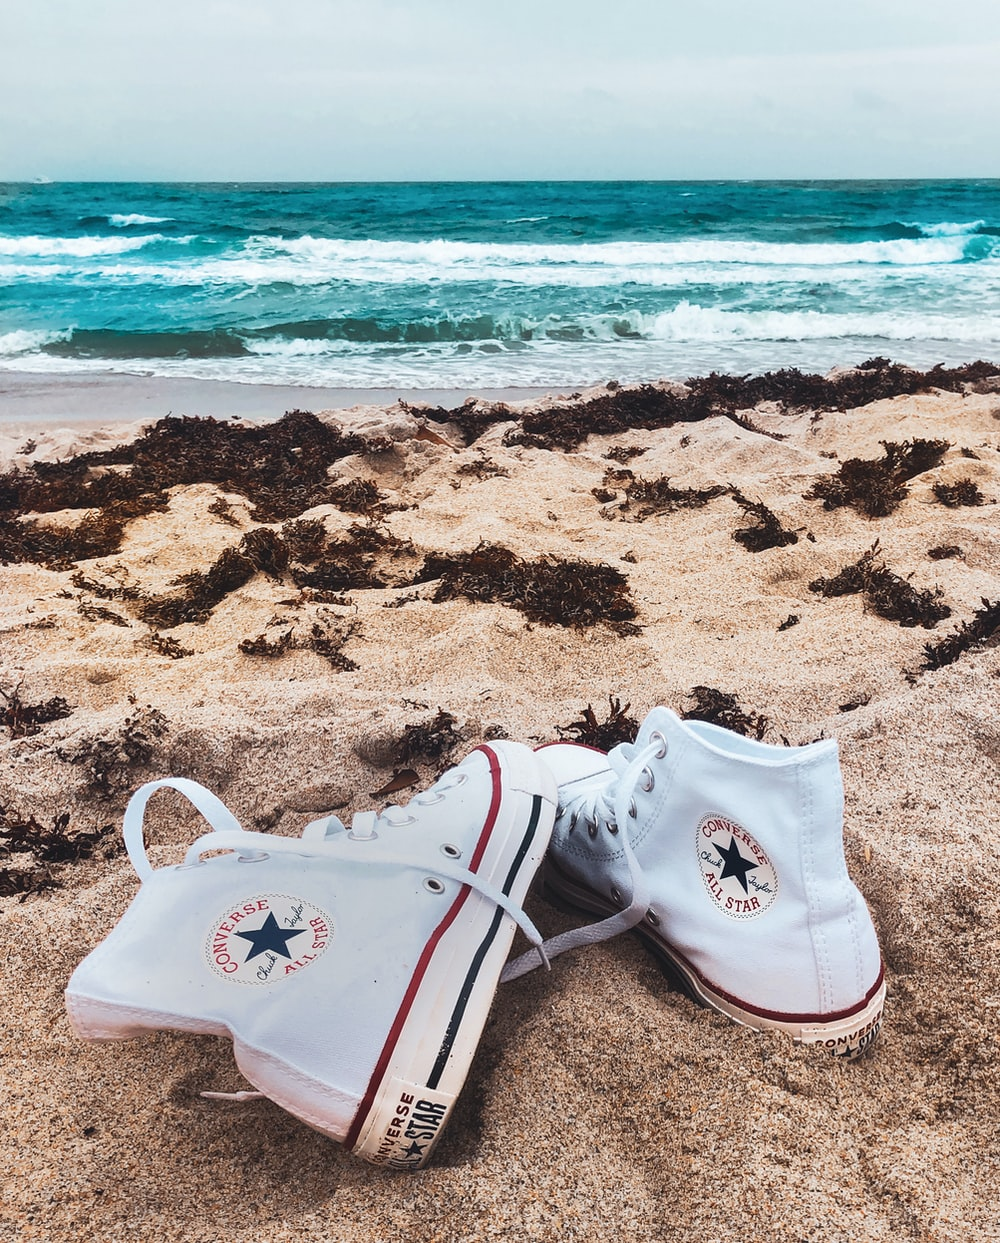 white converse all star high top sneakers on beach shore